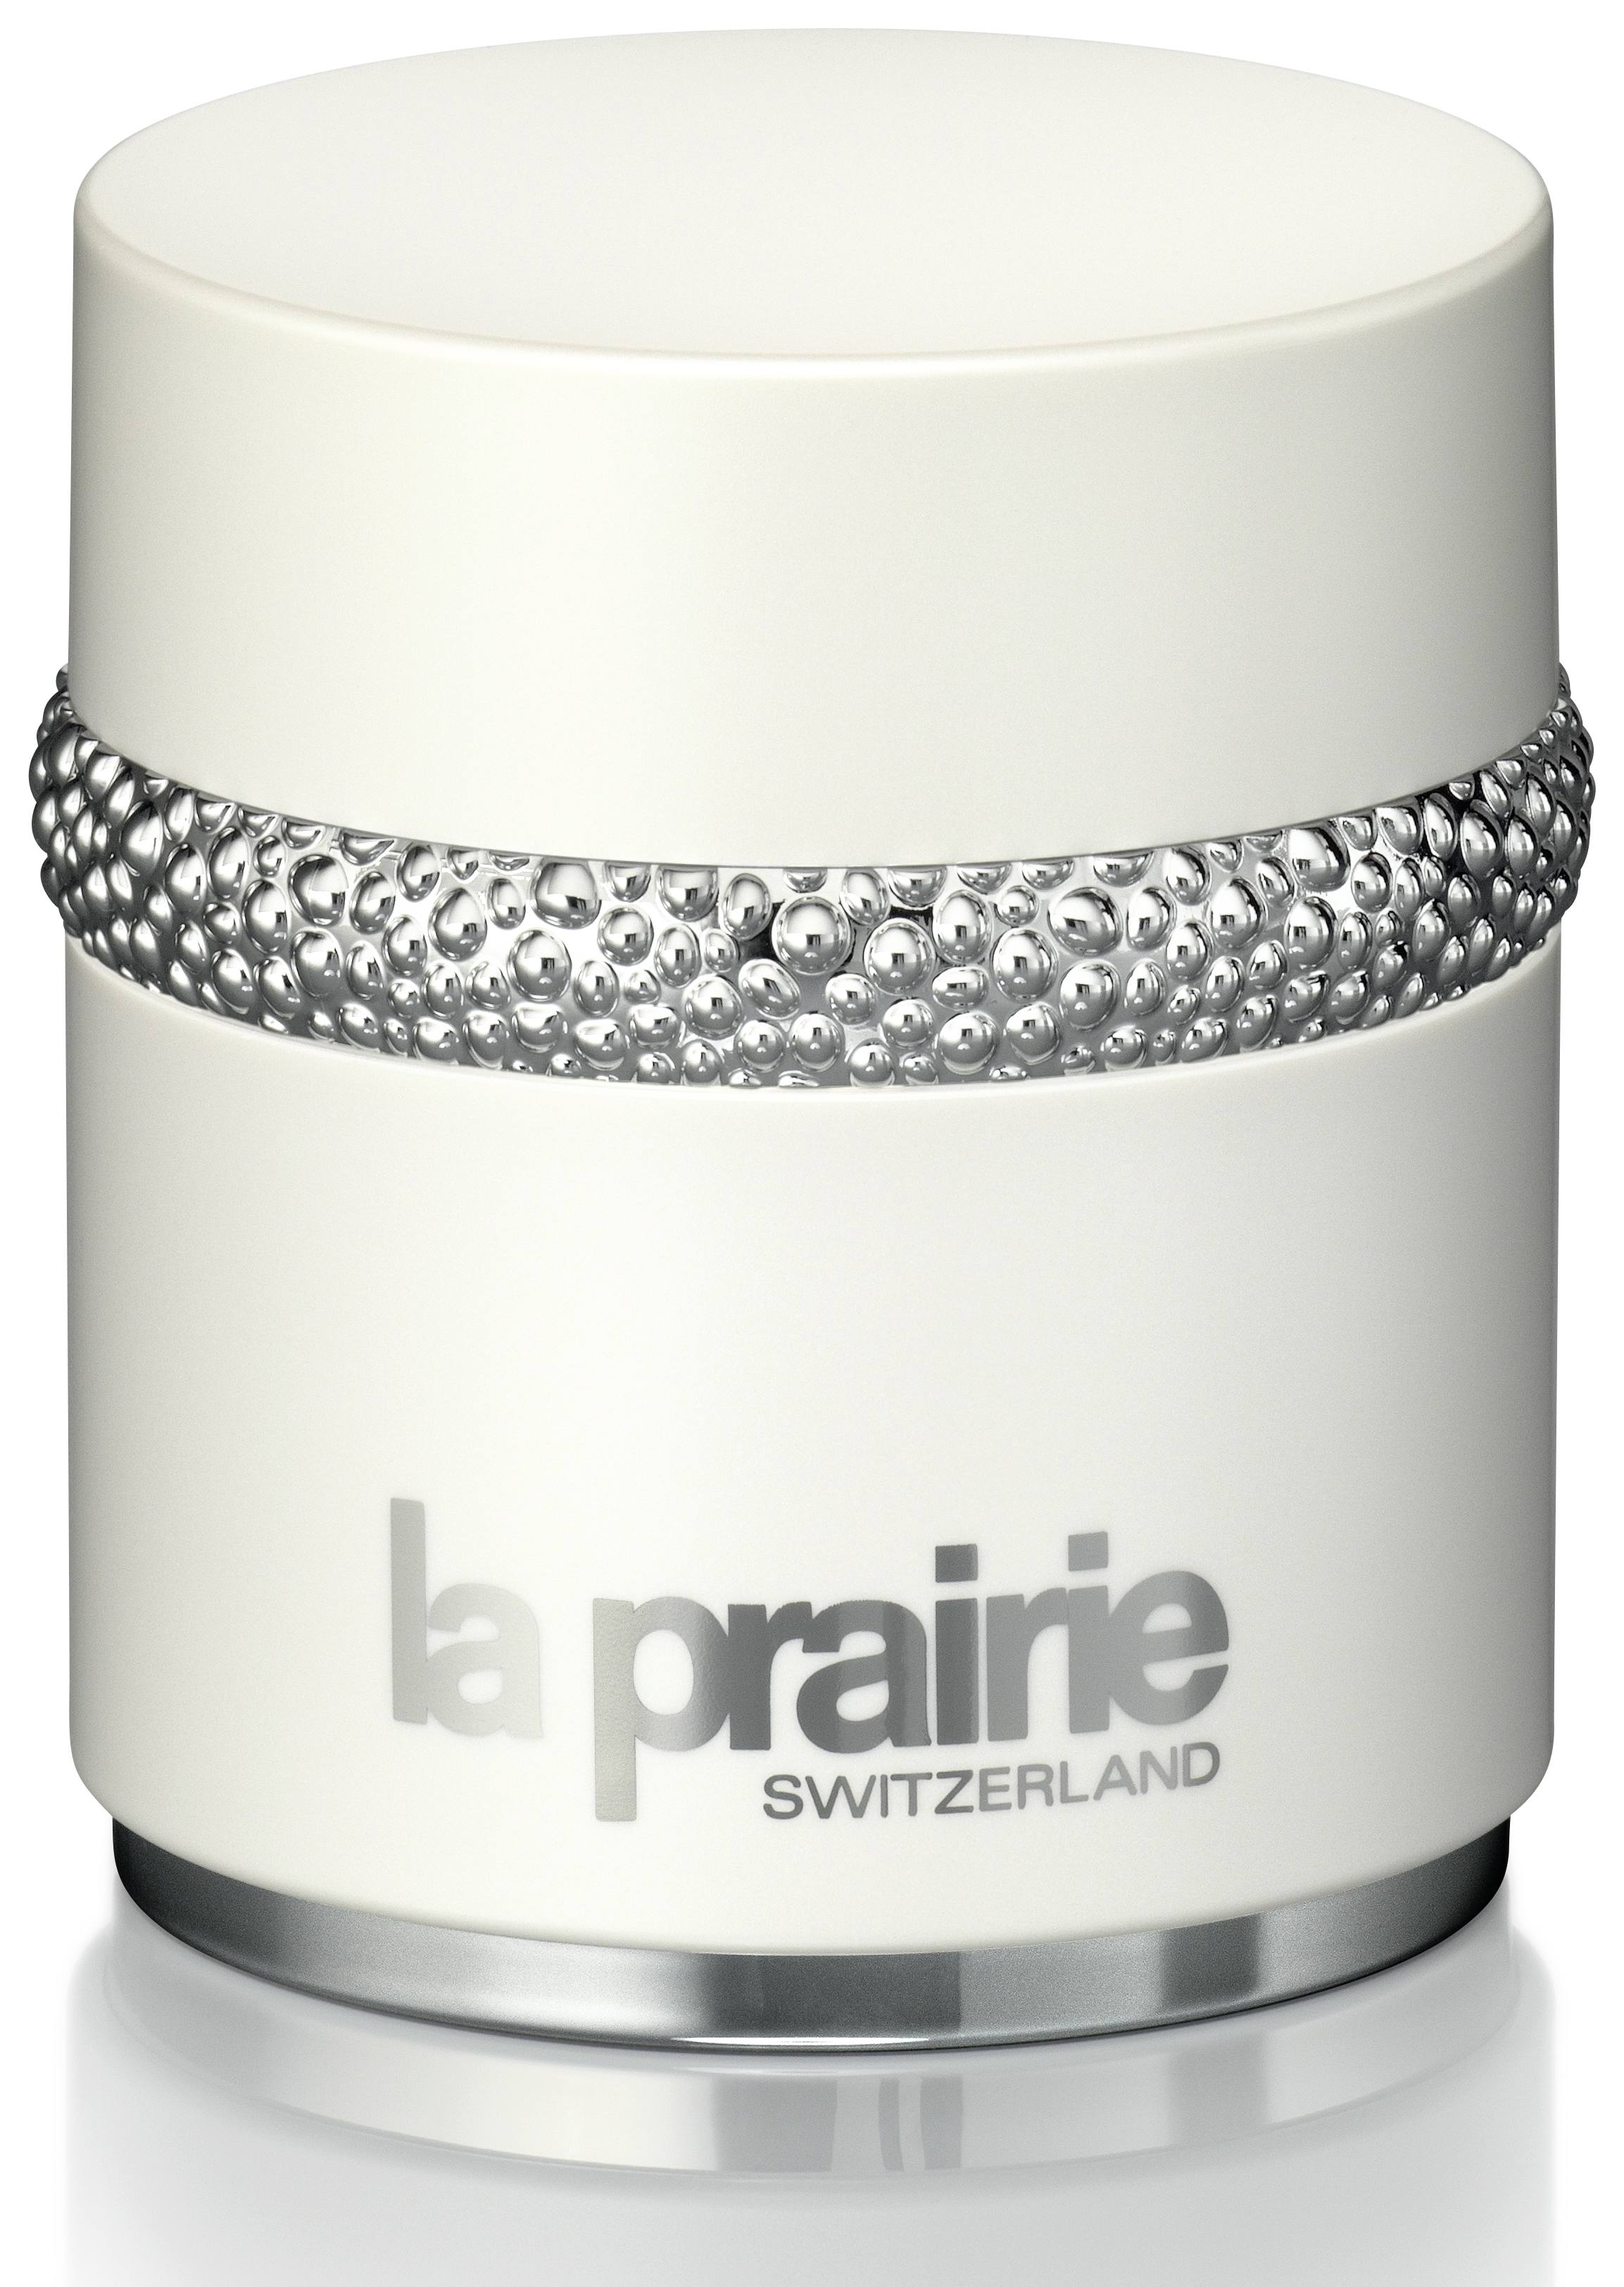 Bon plan LA PRAIRIE [Beyond the rack]